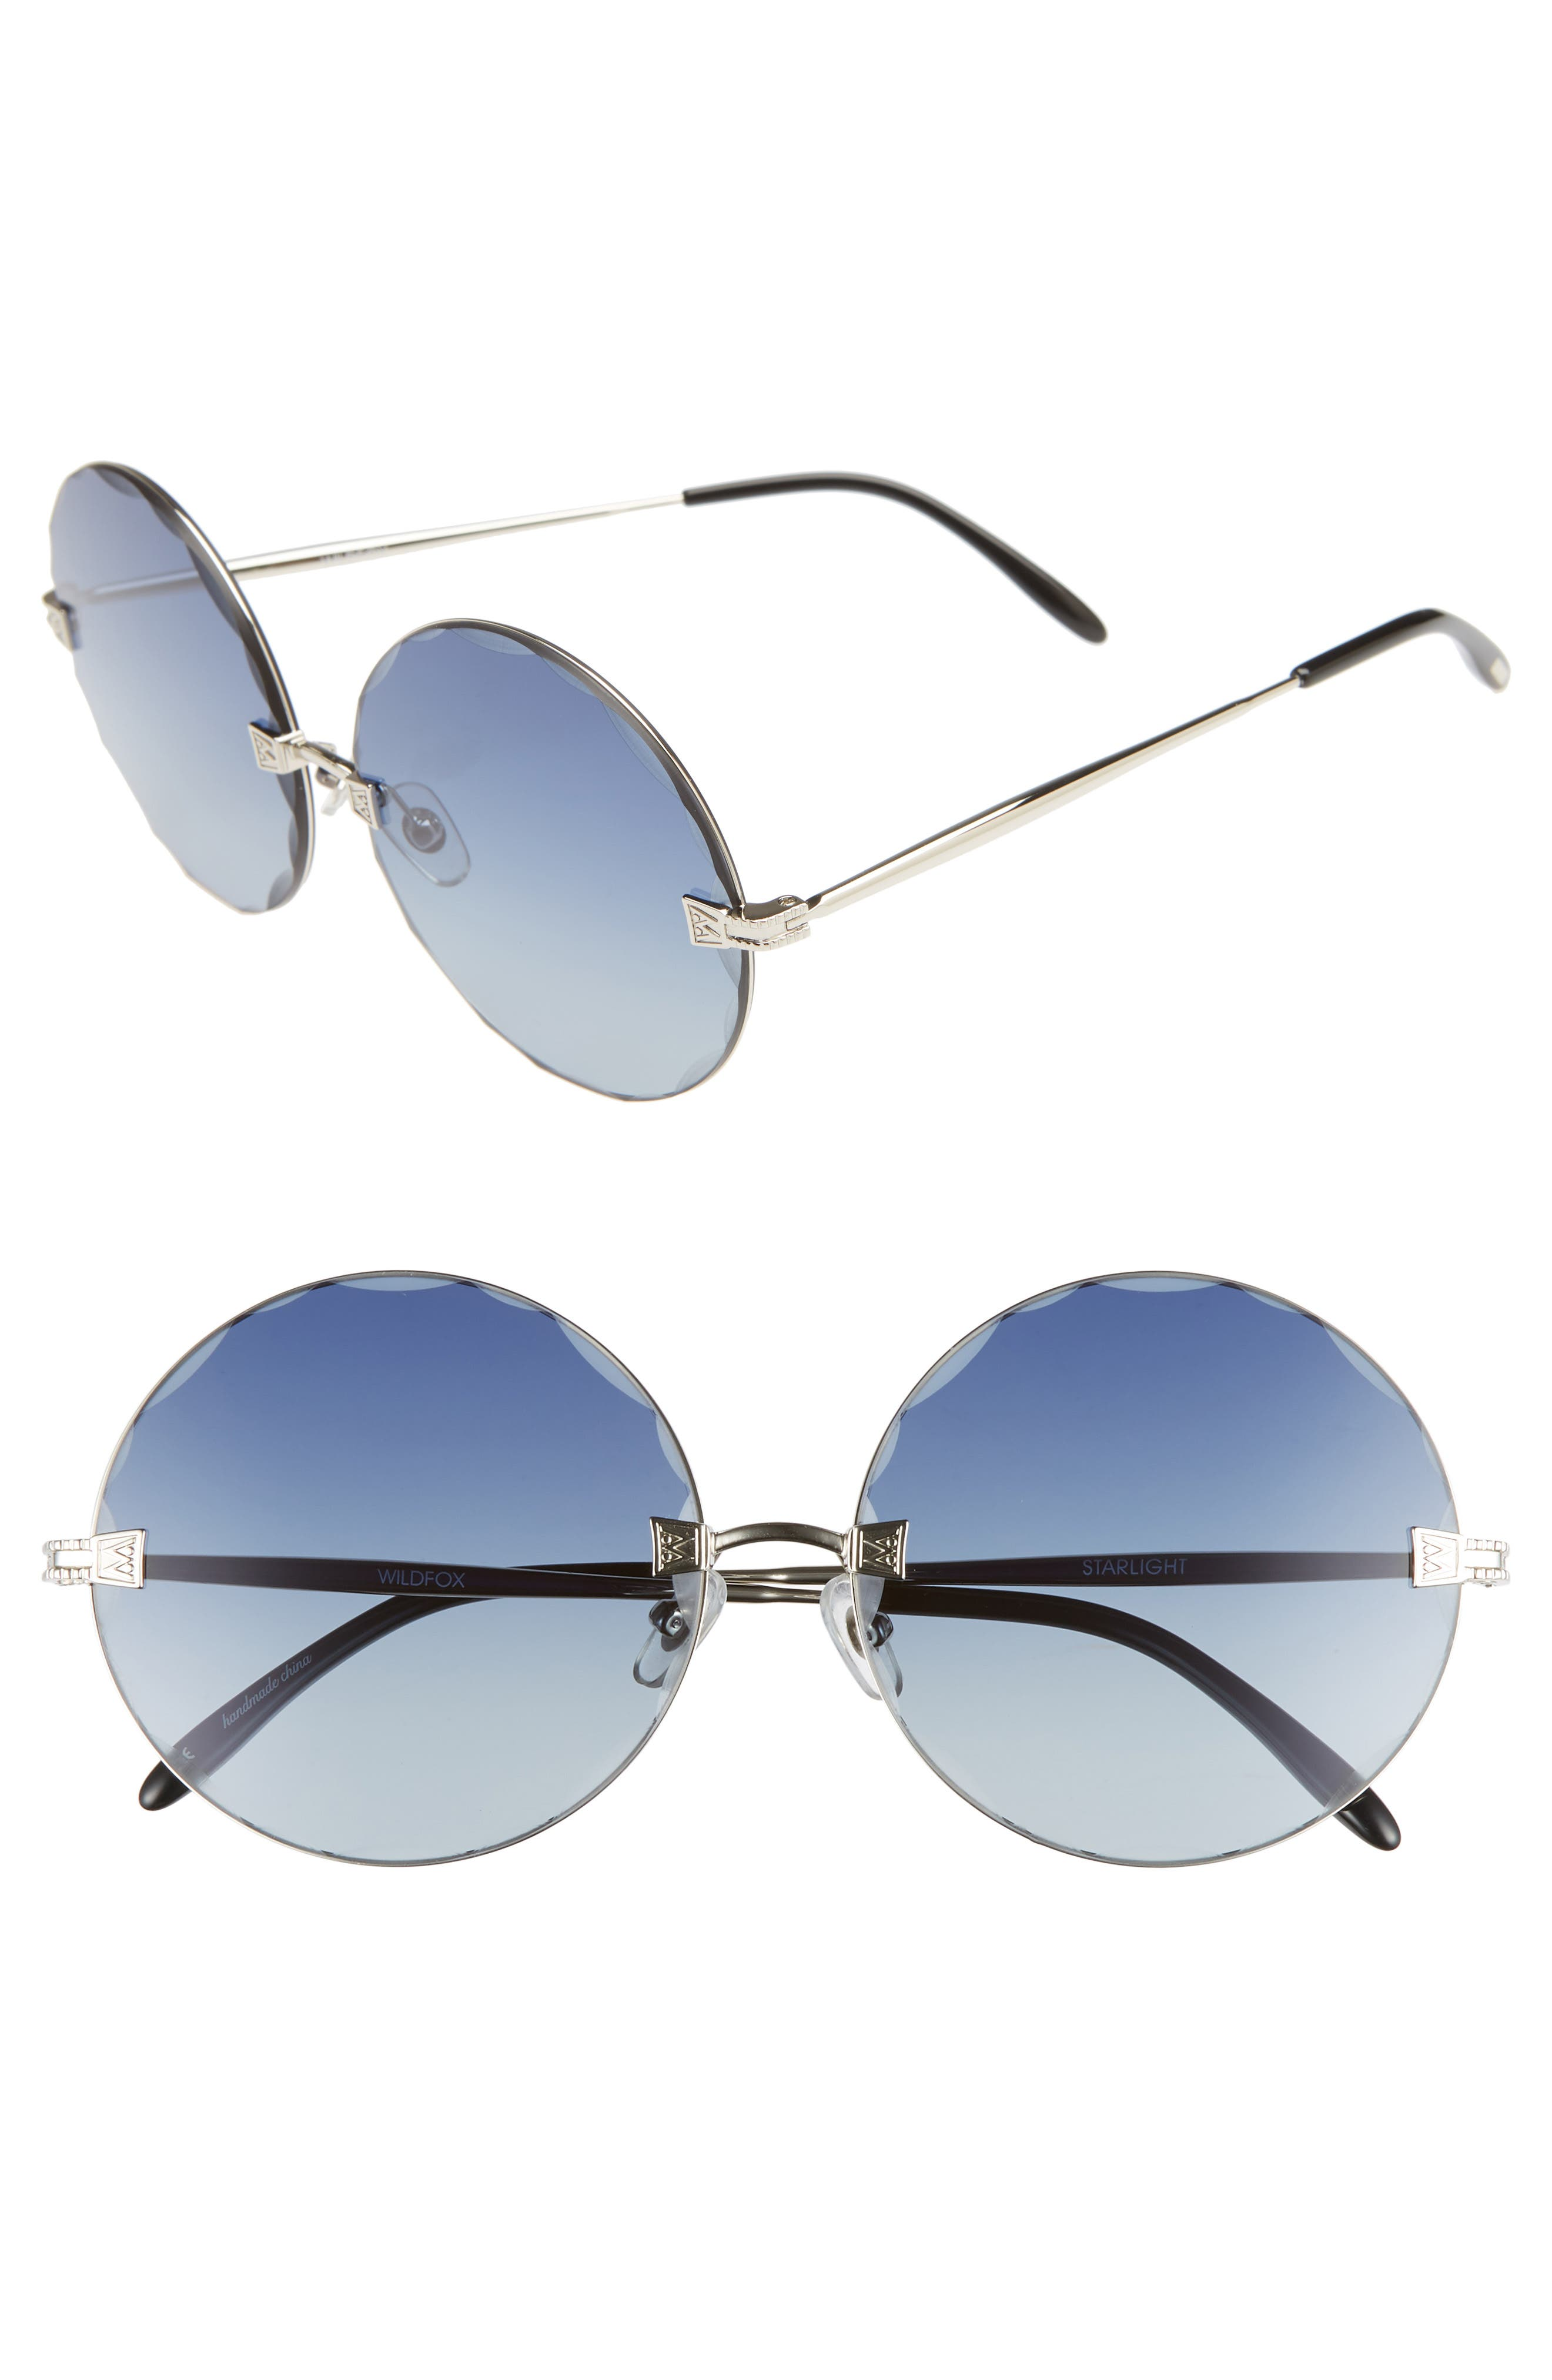 Starlight 62mm Oversize Round Sunglasses,                         Main,                         color, 040